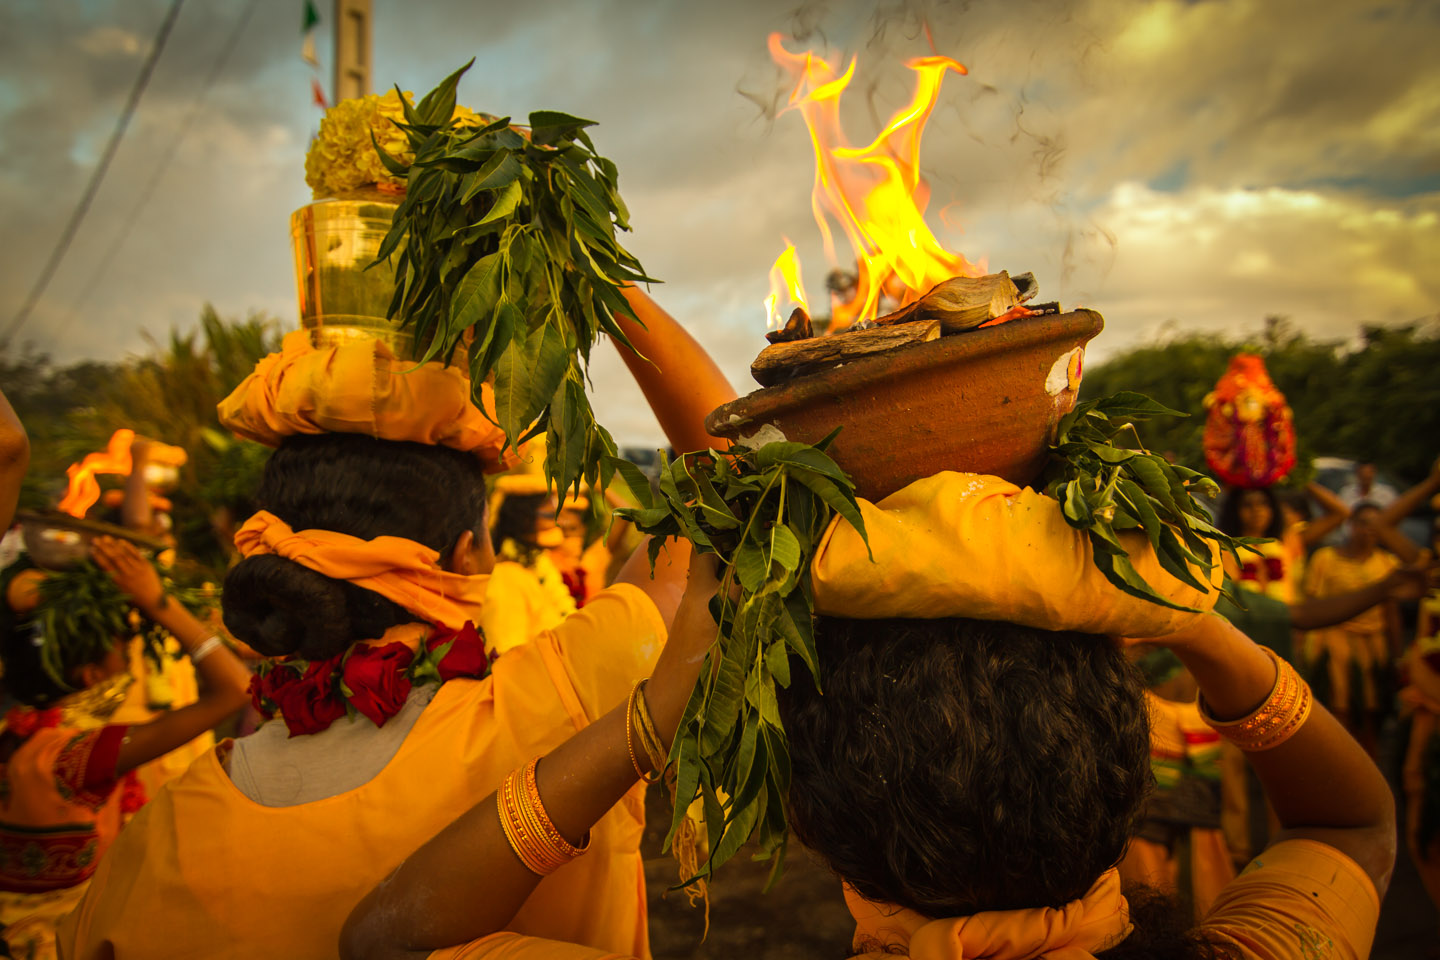 Tamil women carrying fire bowls at Marche sur le feu firewalk La Reunion